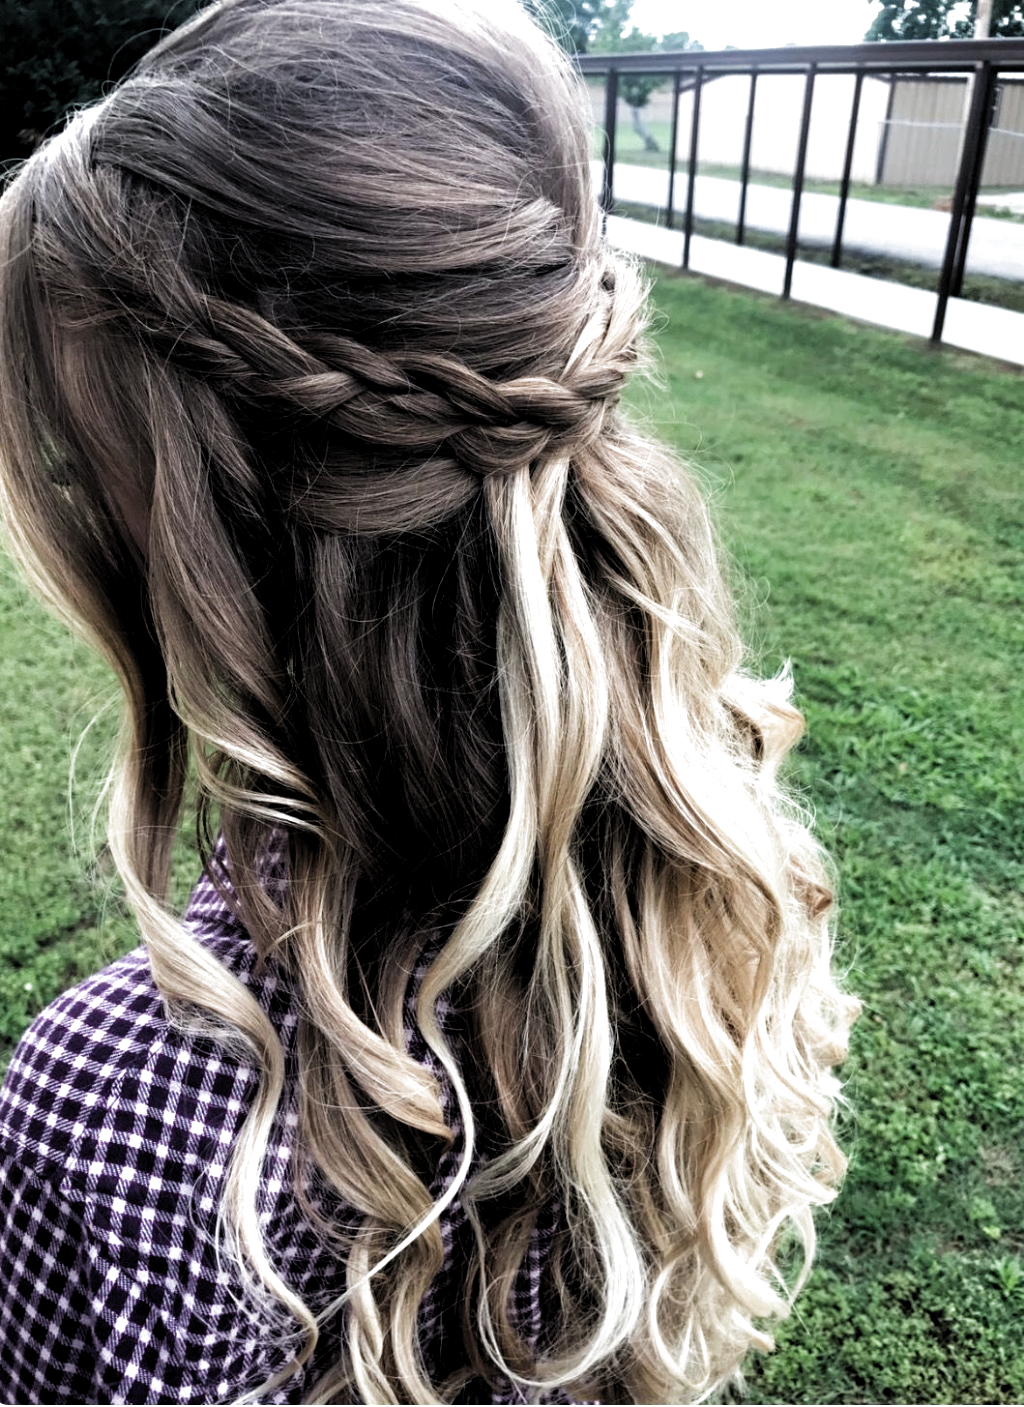 195 Best Formal Hairstyles For Shoulder Length Hair Formal Hairstyles Length Shoulder In 2020 Wedding Hair Down Braids With Curls Prom Hairstyles For Long Hair